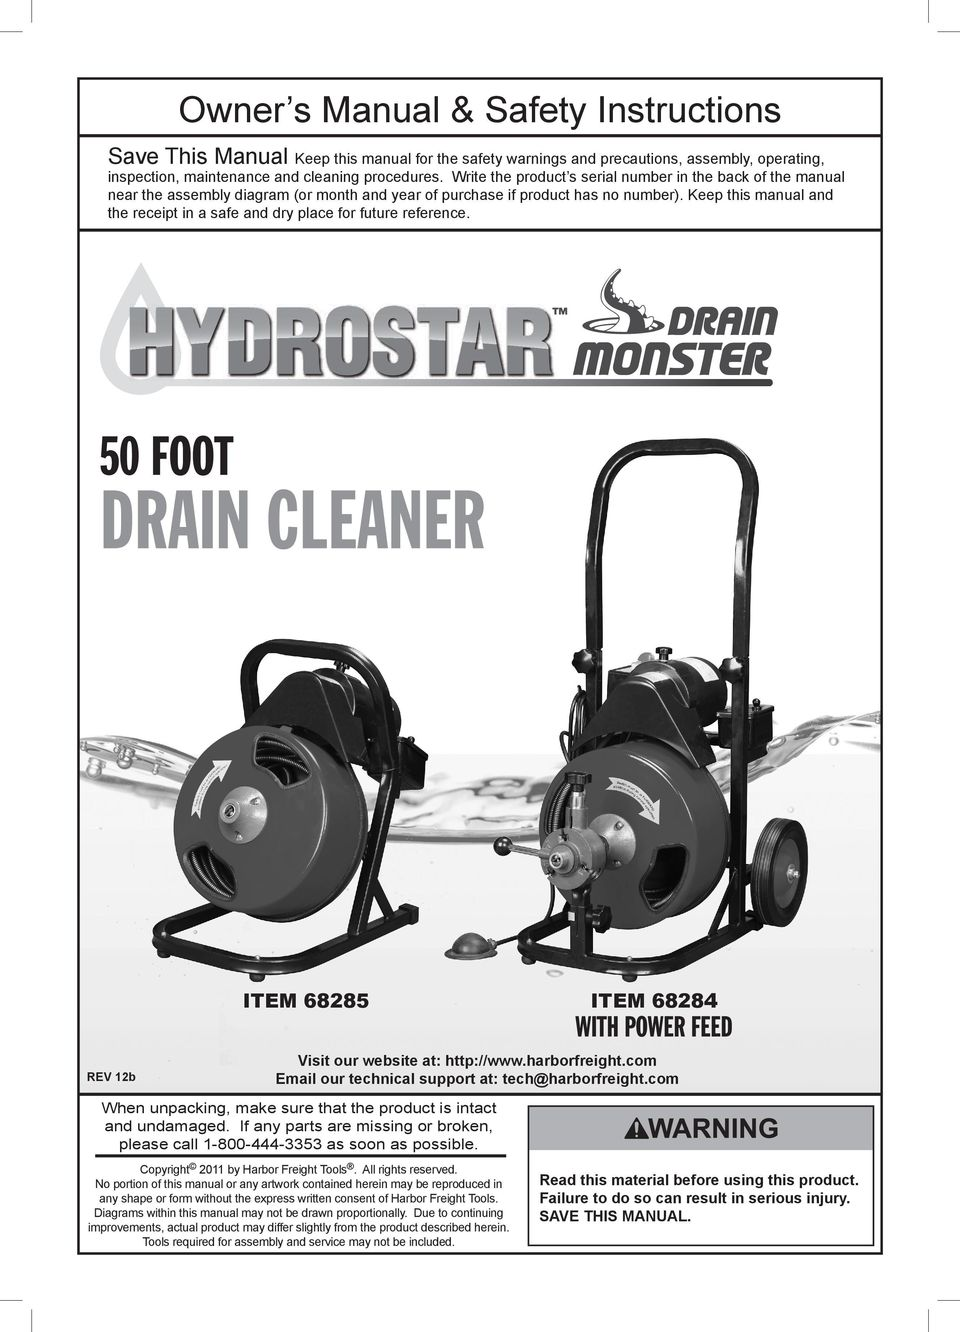 Keep this manual and the receipt in a safe and dry place for future reference. 50 FOOT DRAIN CLEANER REV 12b ITEM 68285 ITEM 68284 WITH POWER FEED Visit our website at: http://www.harborfreight.